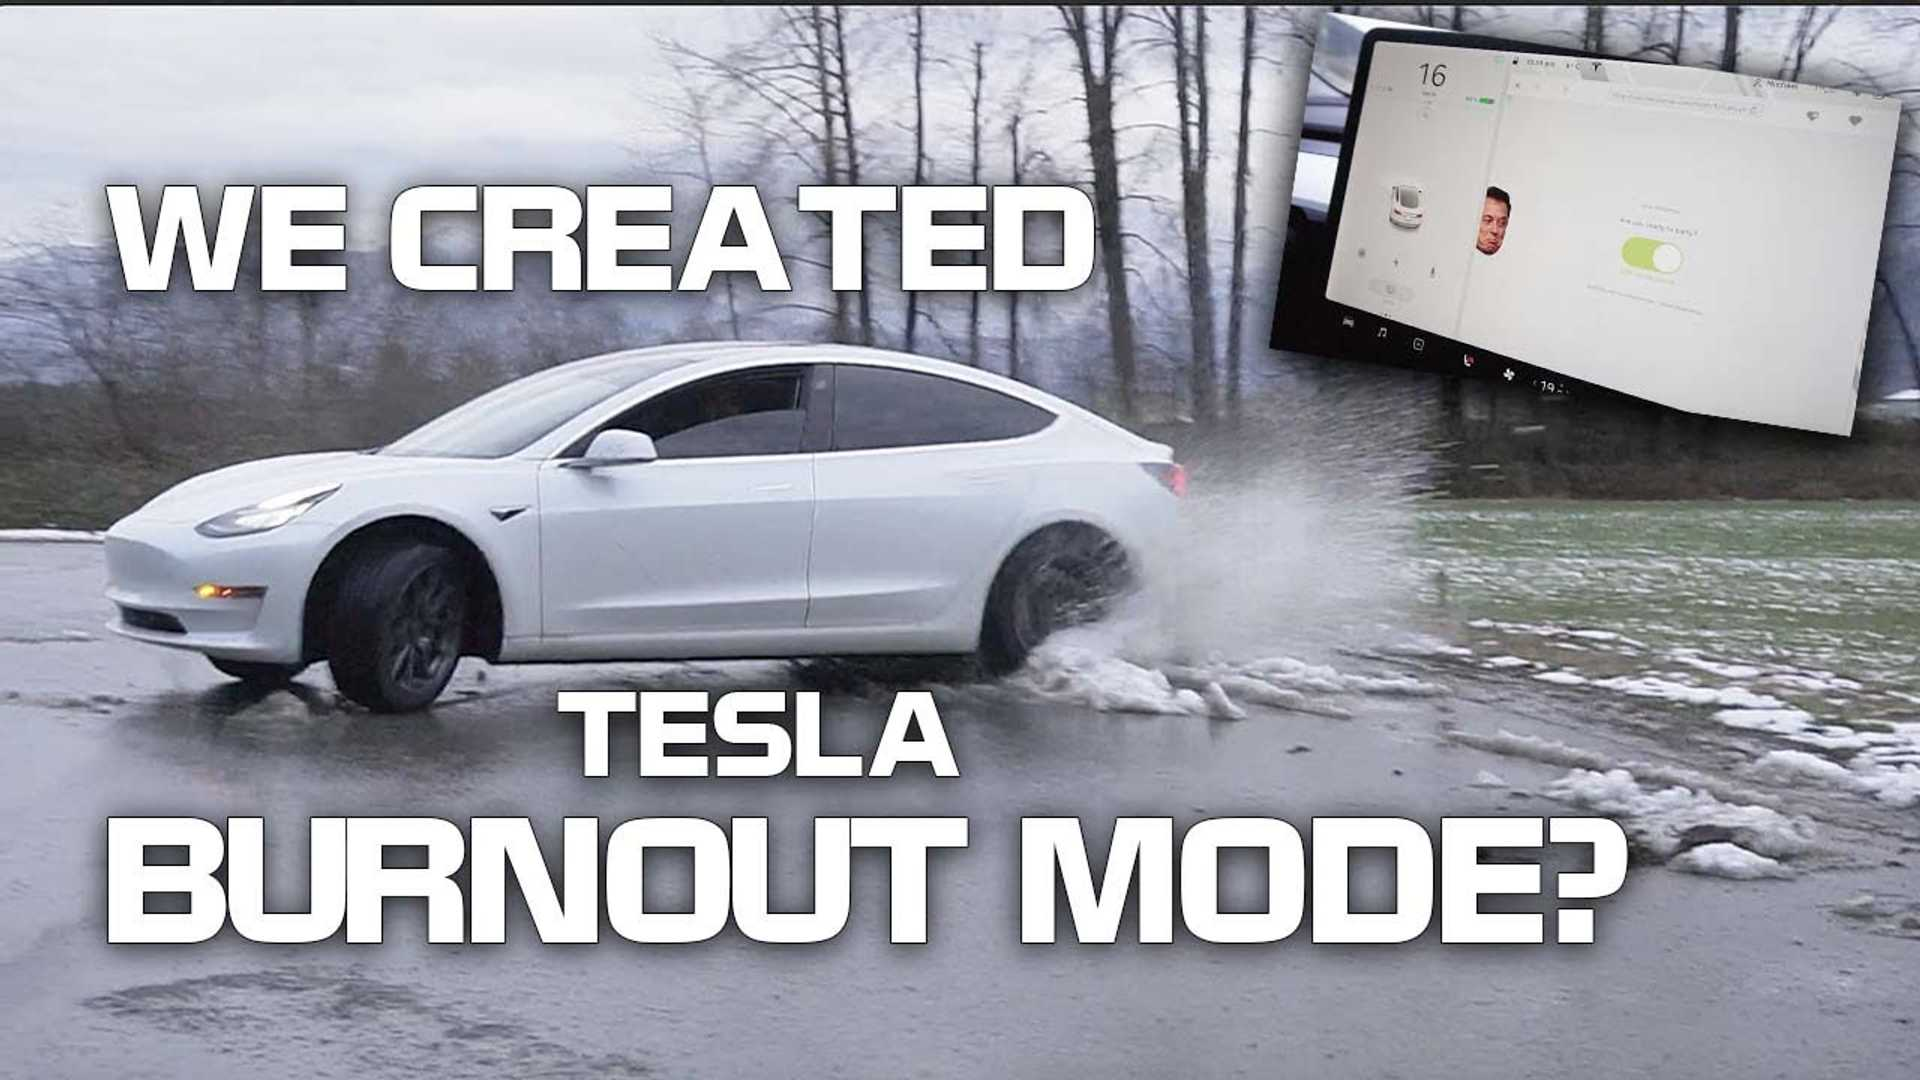 See Burnout, Drift & Reverse Spin Mode In Action In Tesla Model 3